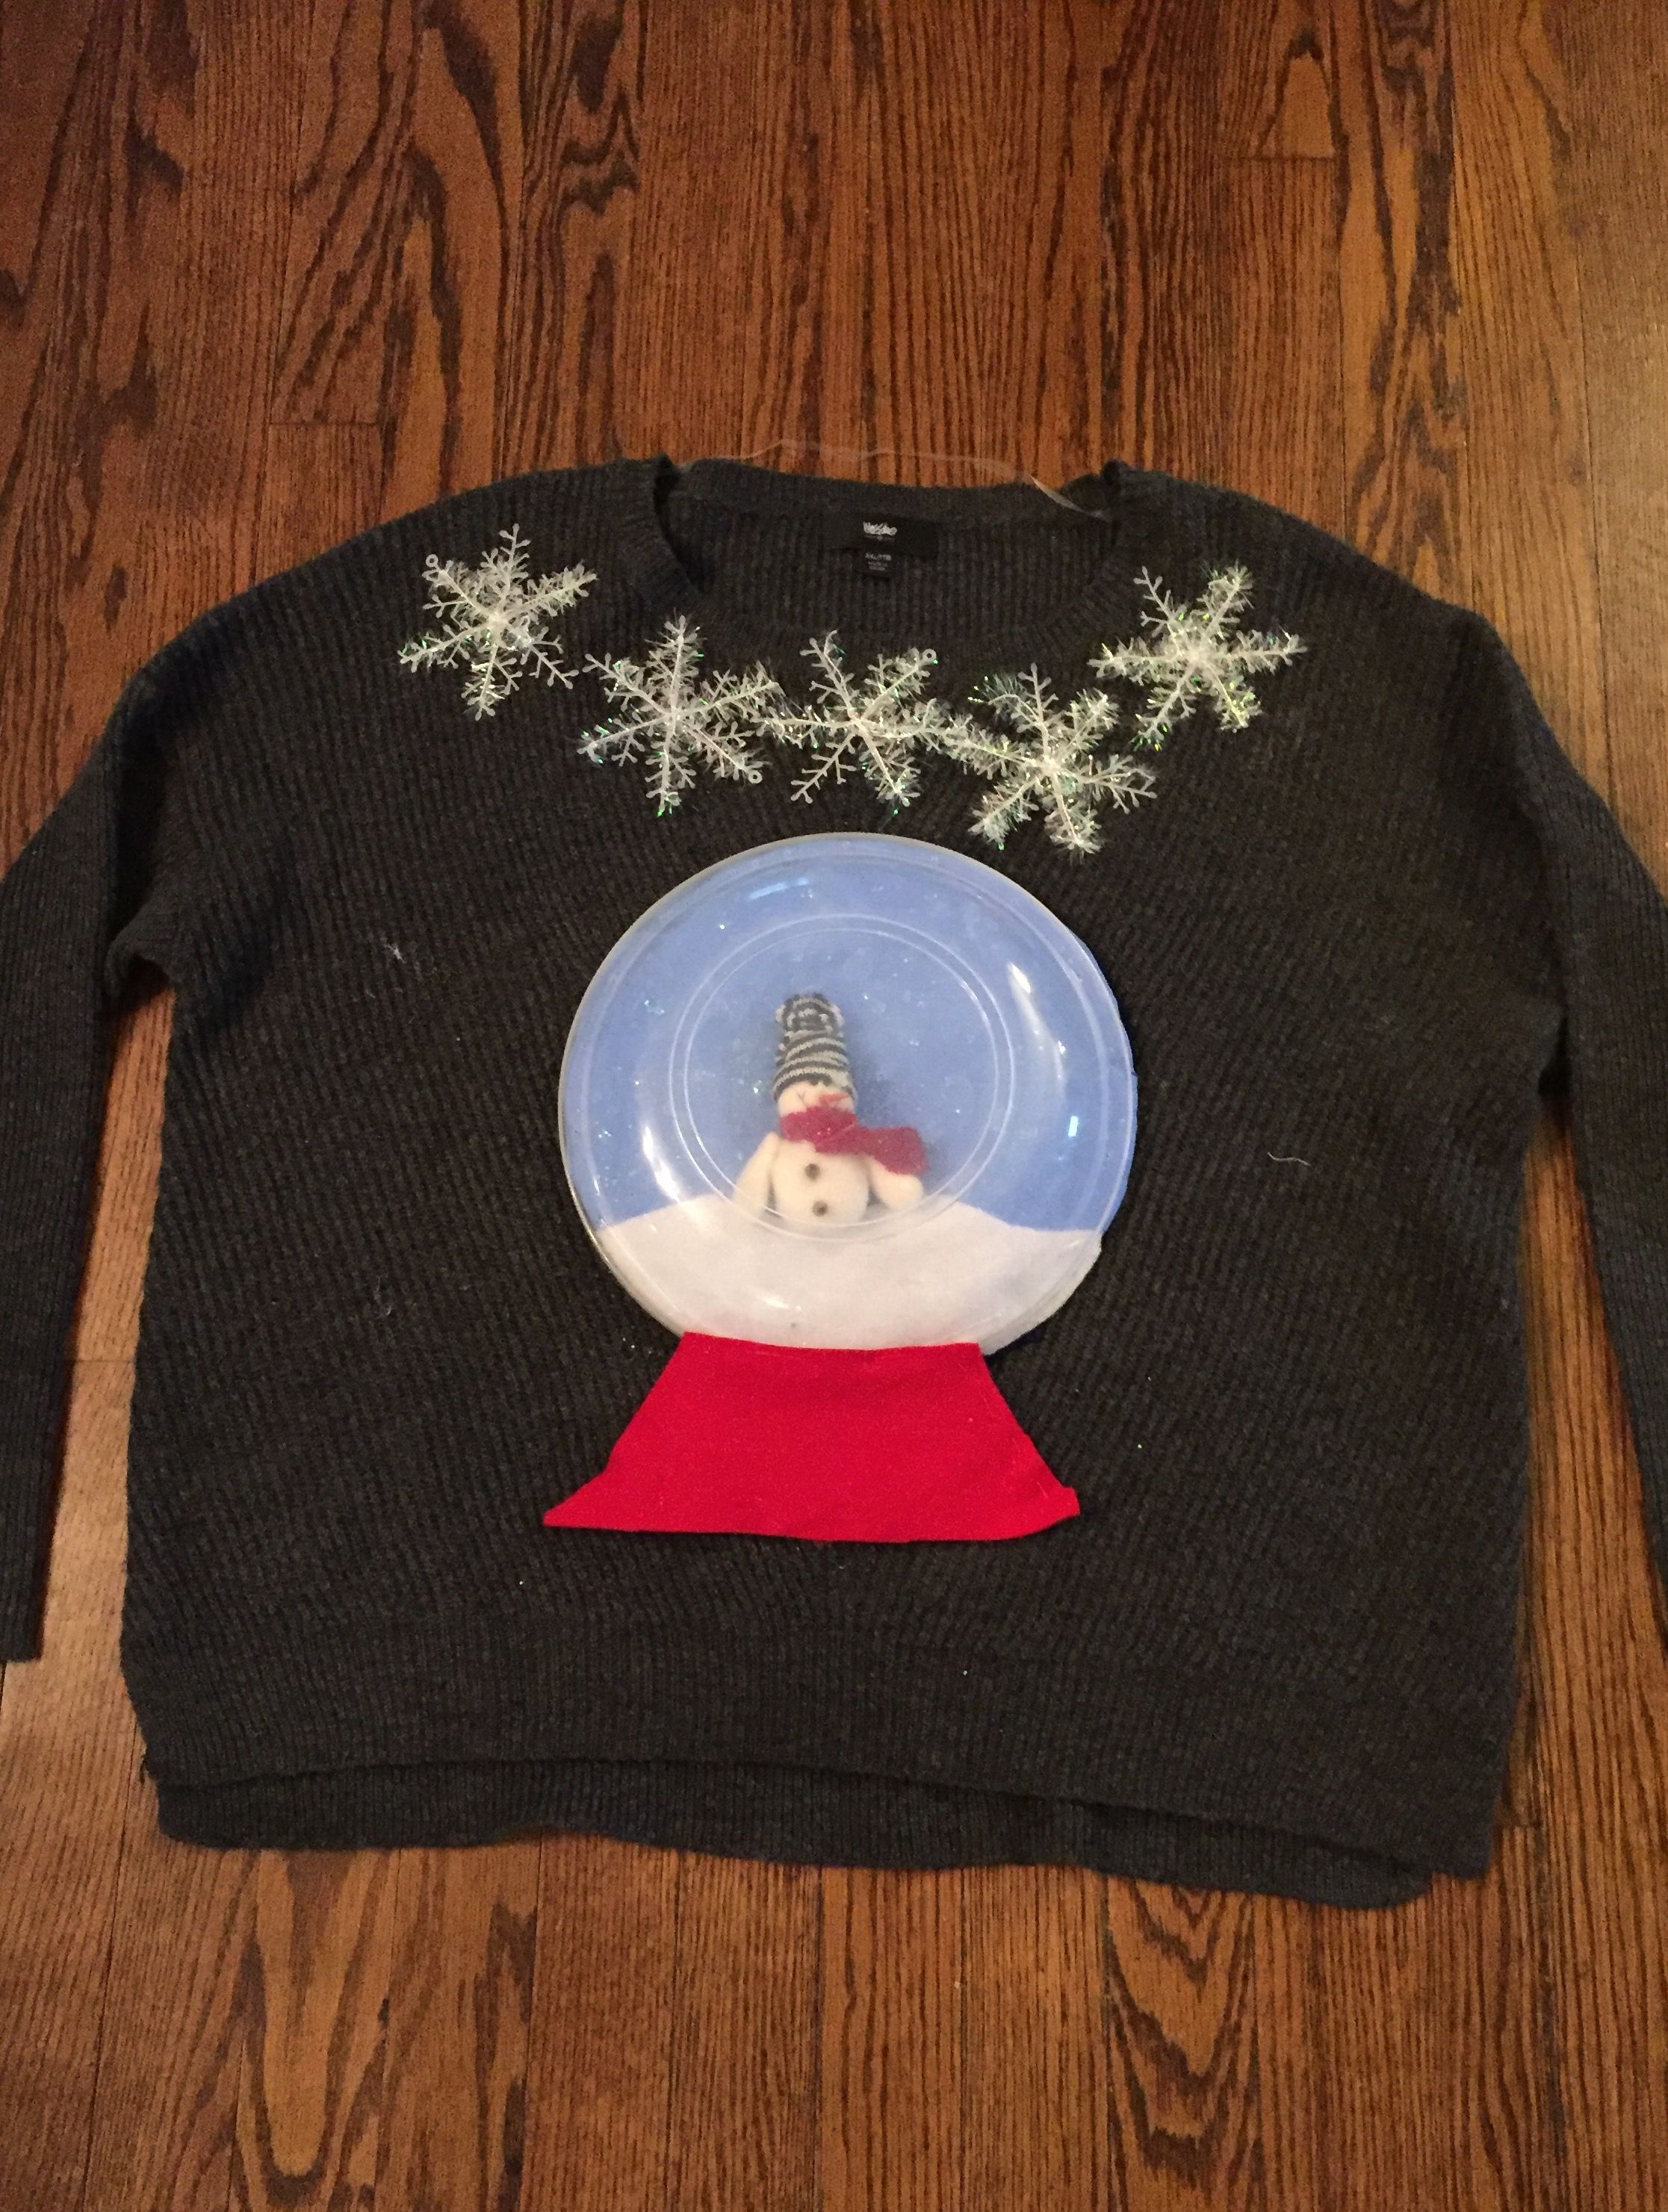 Awesome Ugly Christmas Sweaters To Delight And Horrify Just About